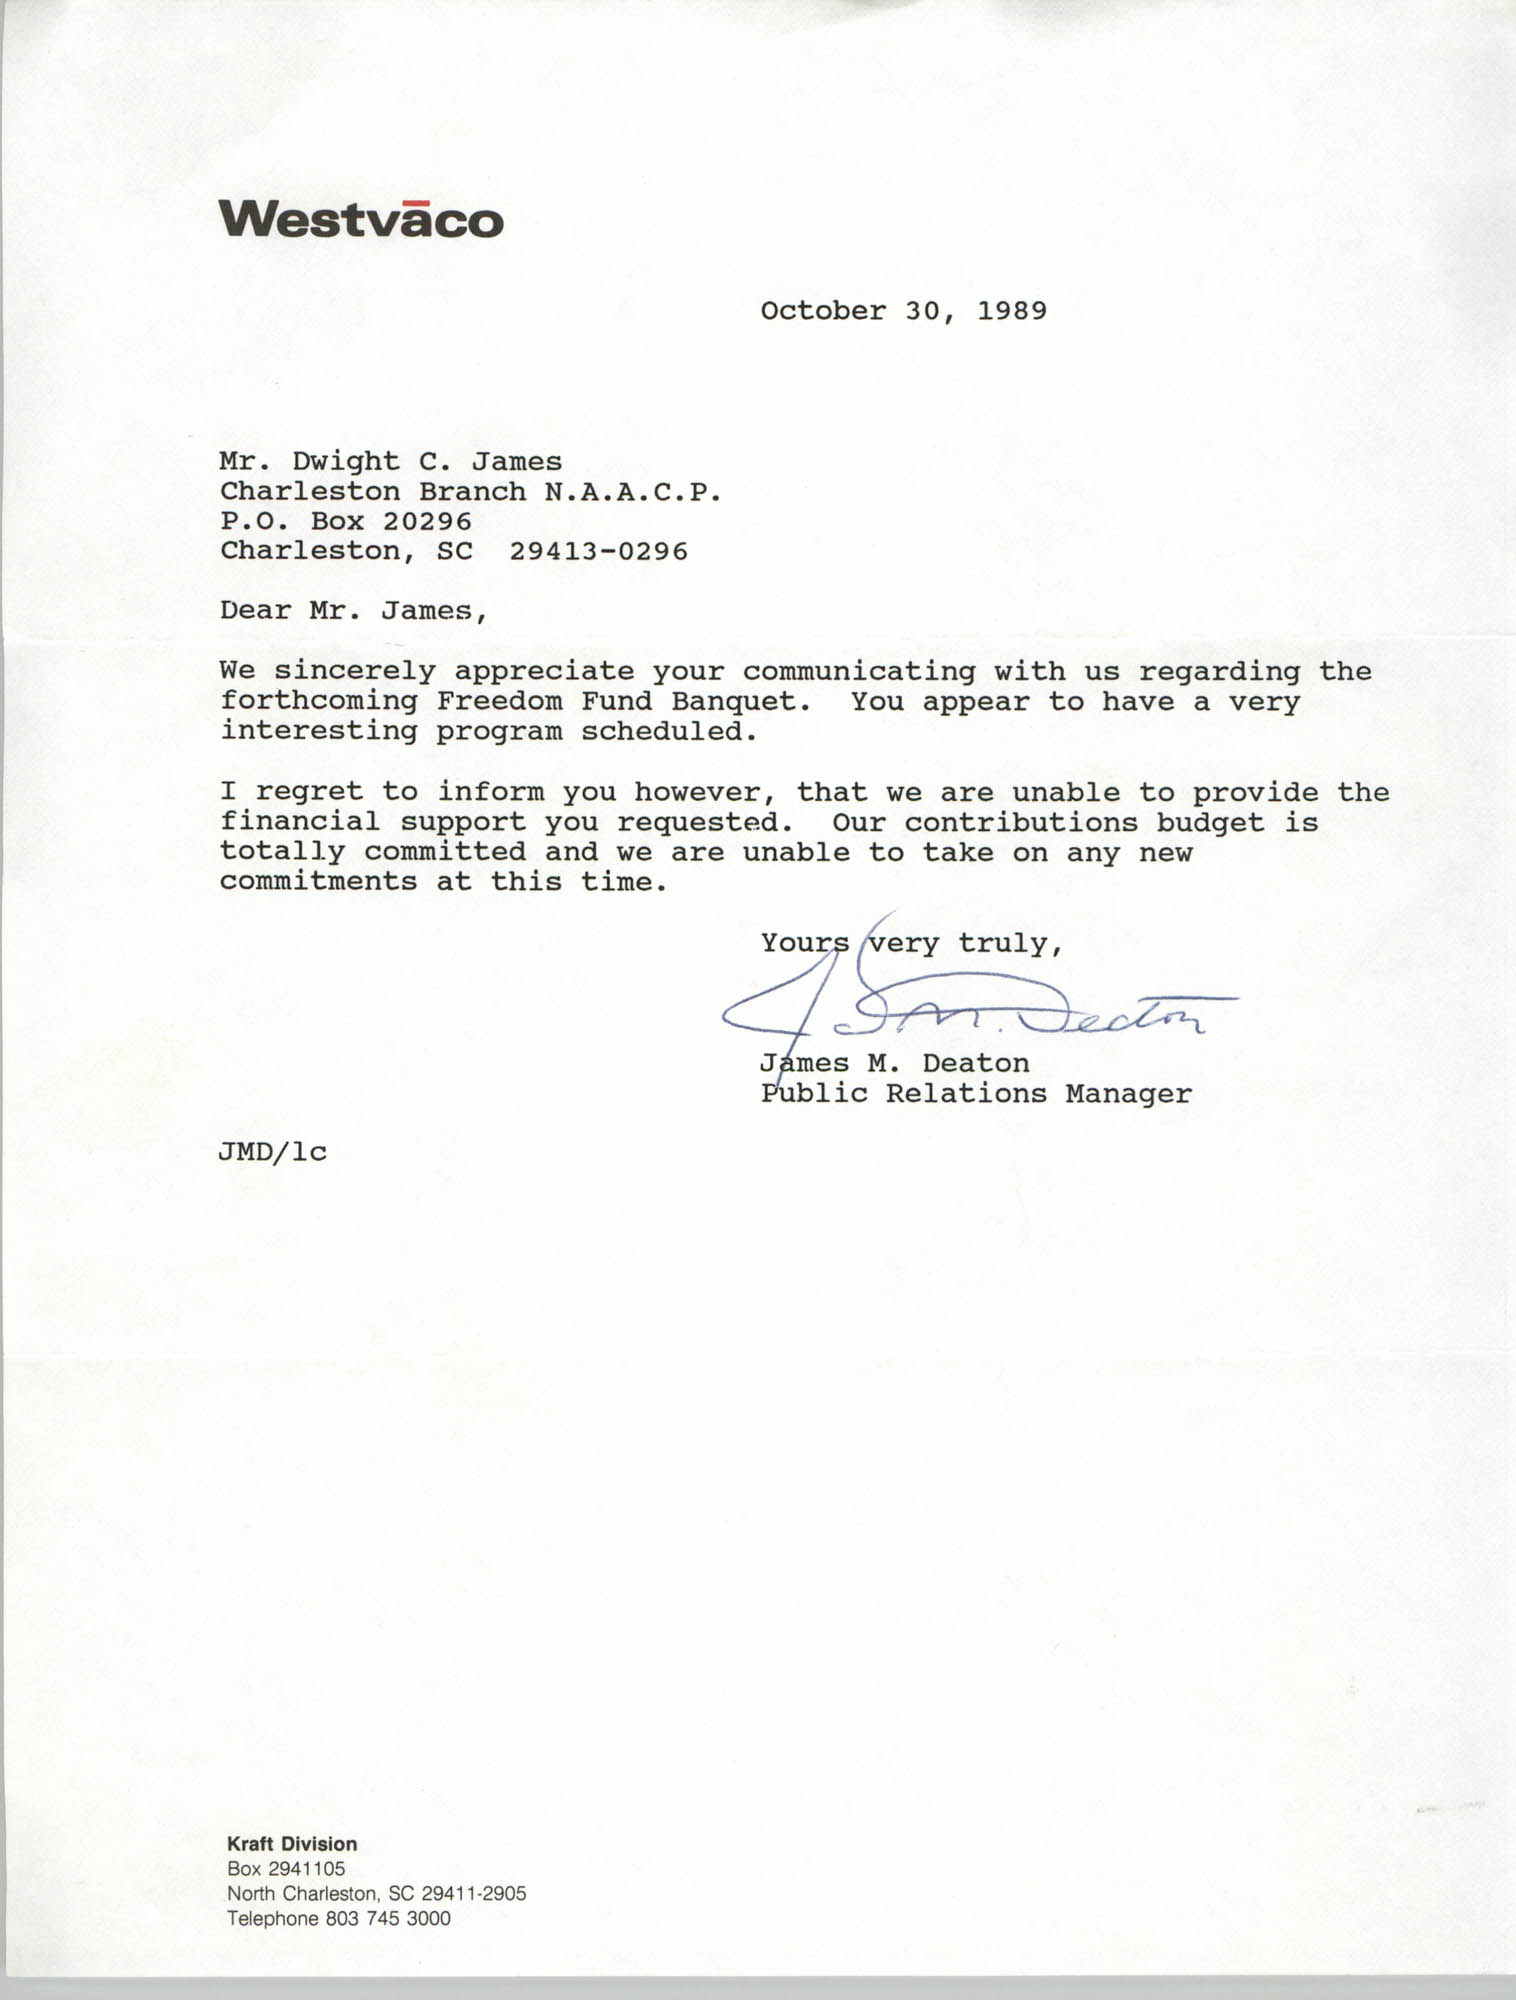 Letter from James M. Deaton to Dwight C. James, October 30, 1989